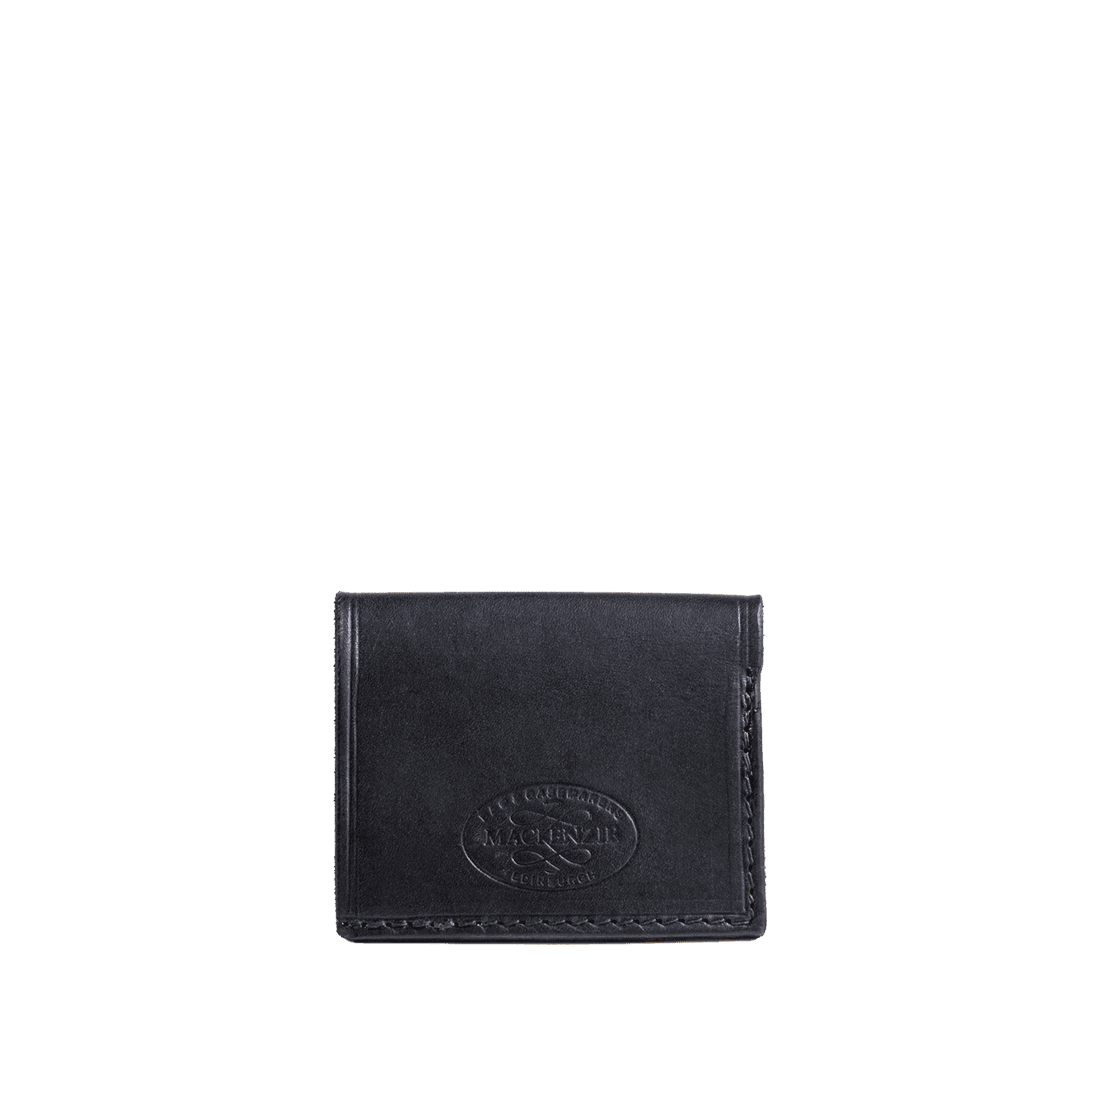 The deluxe card holder shiny black